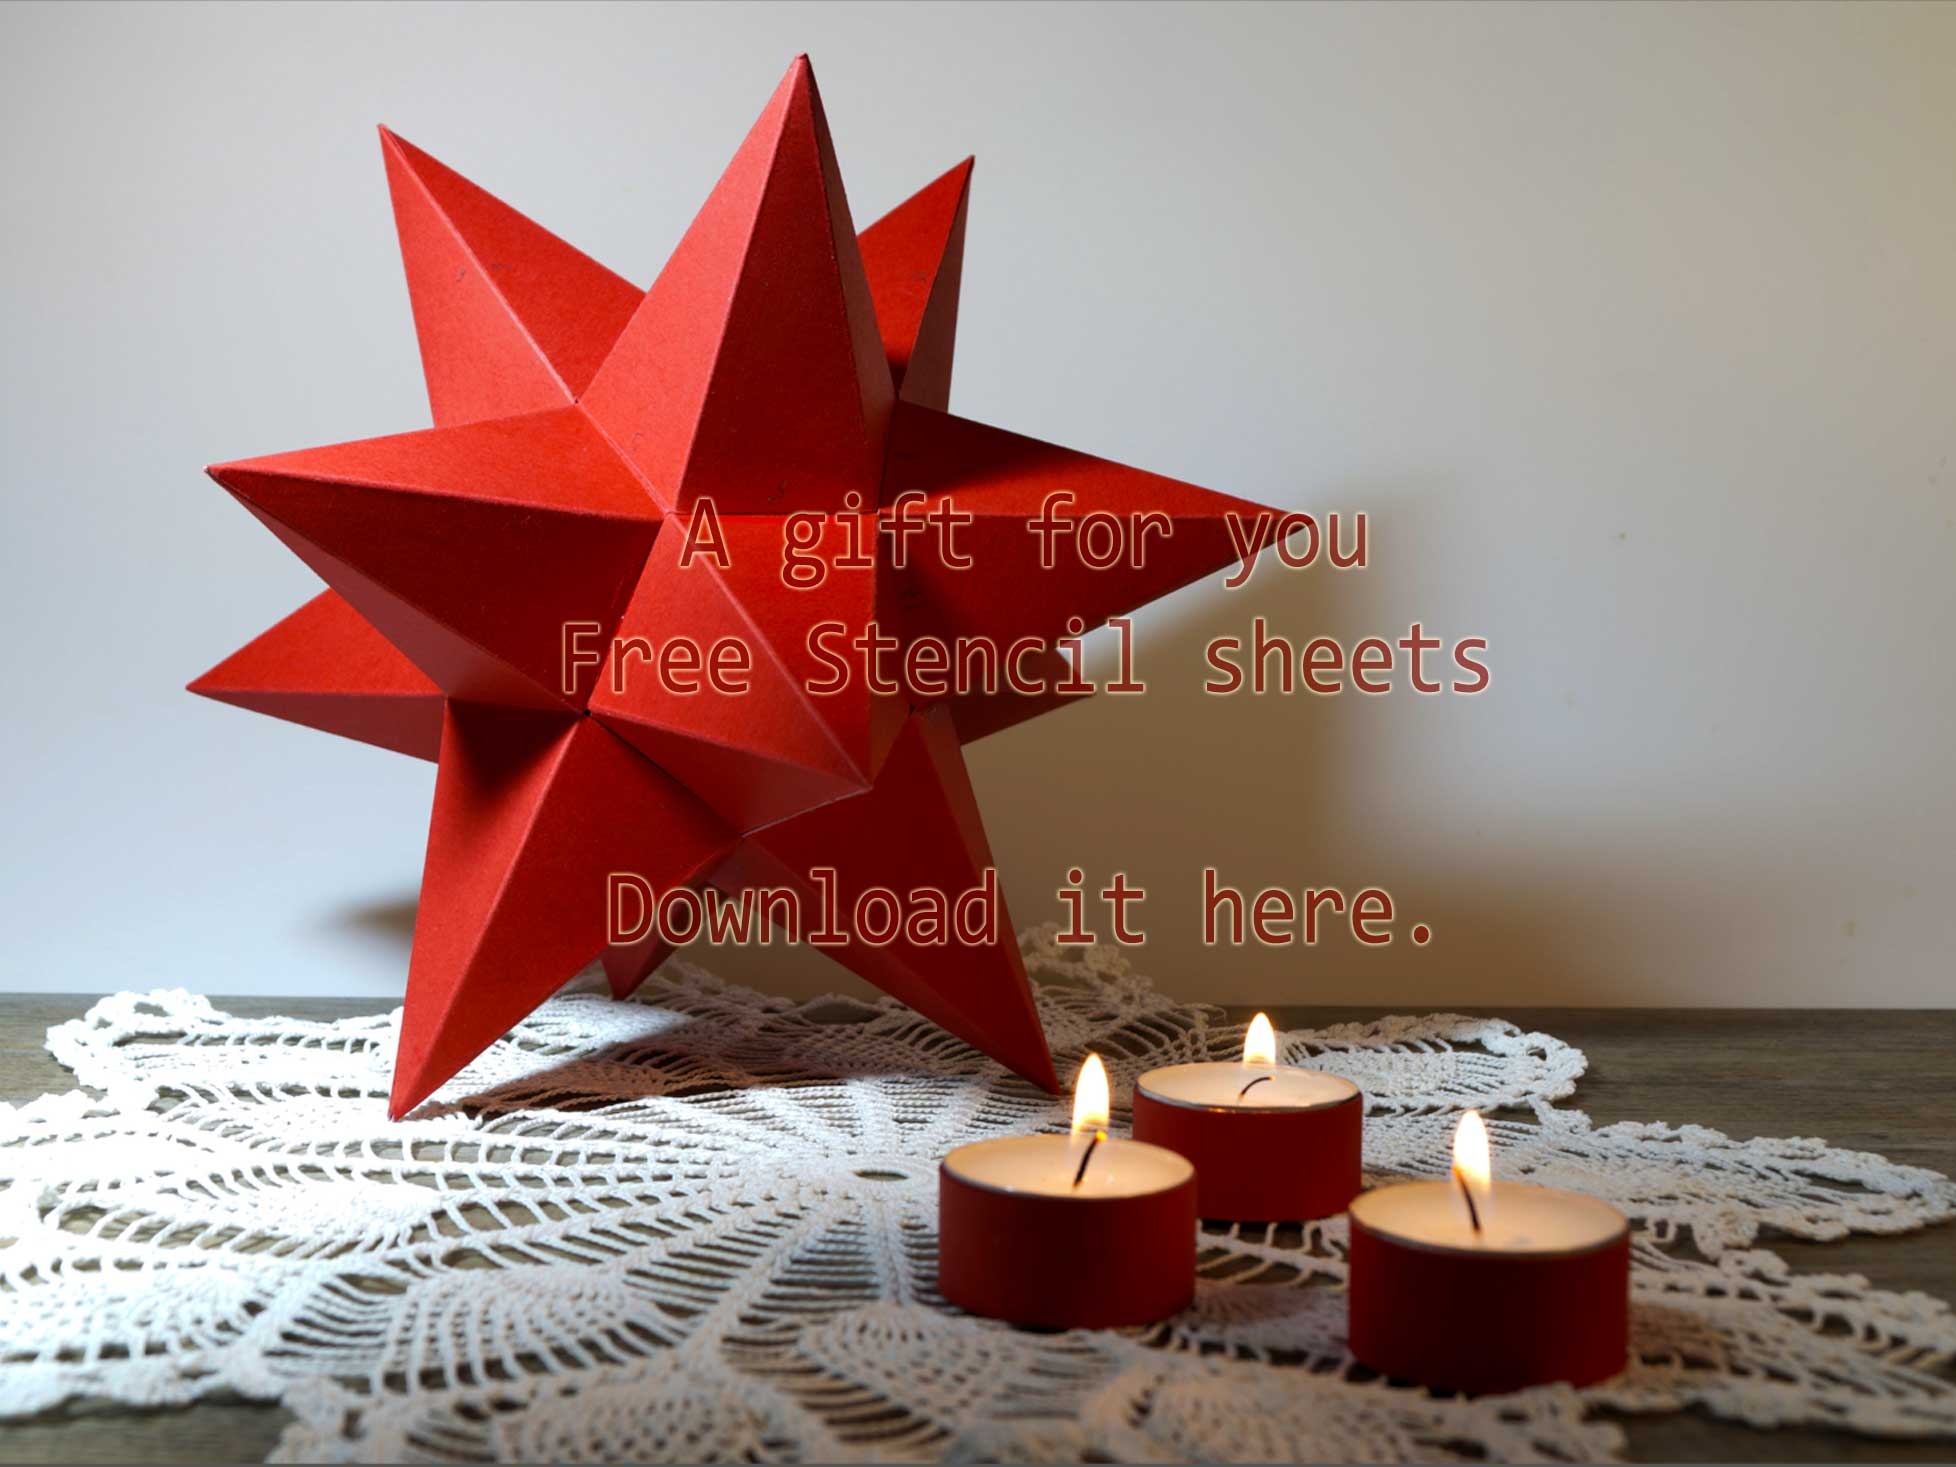 Free-gift-Stencil-Sheets -For a Dodecahedrone Star, Design Kent Laursen